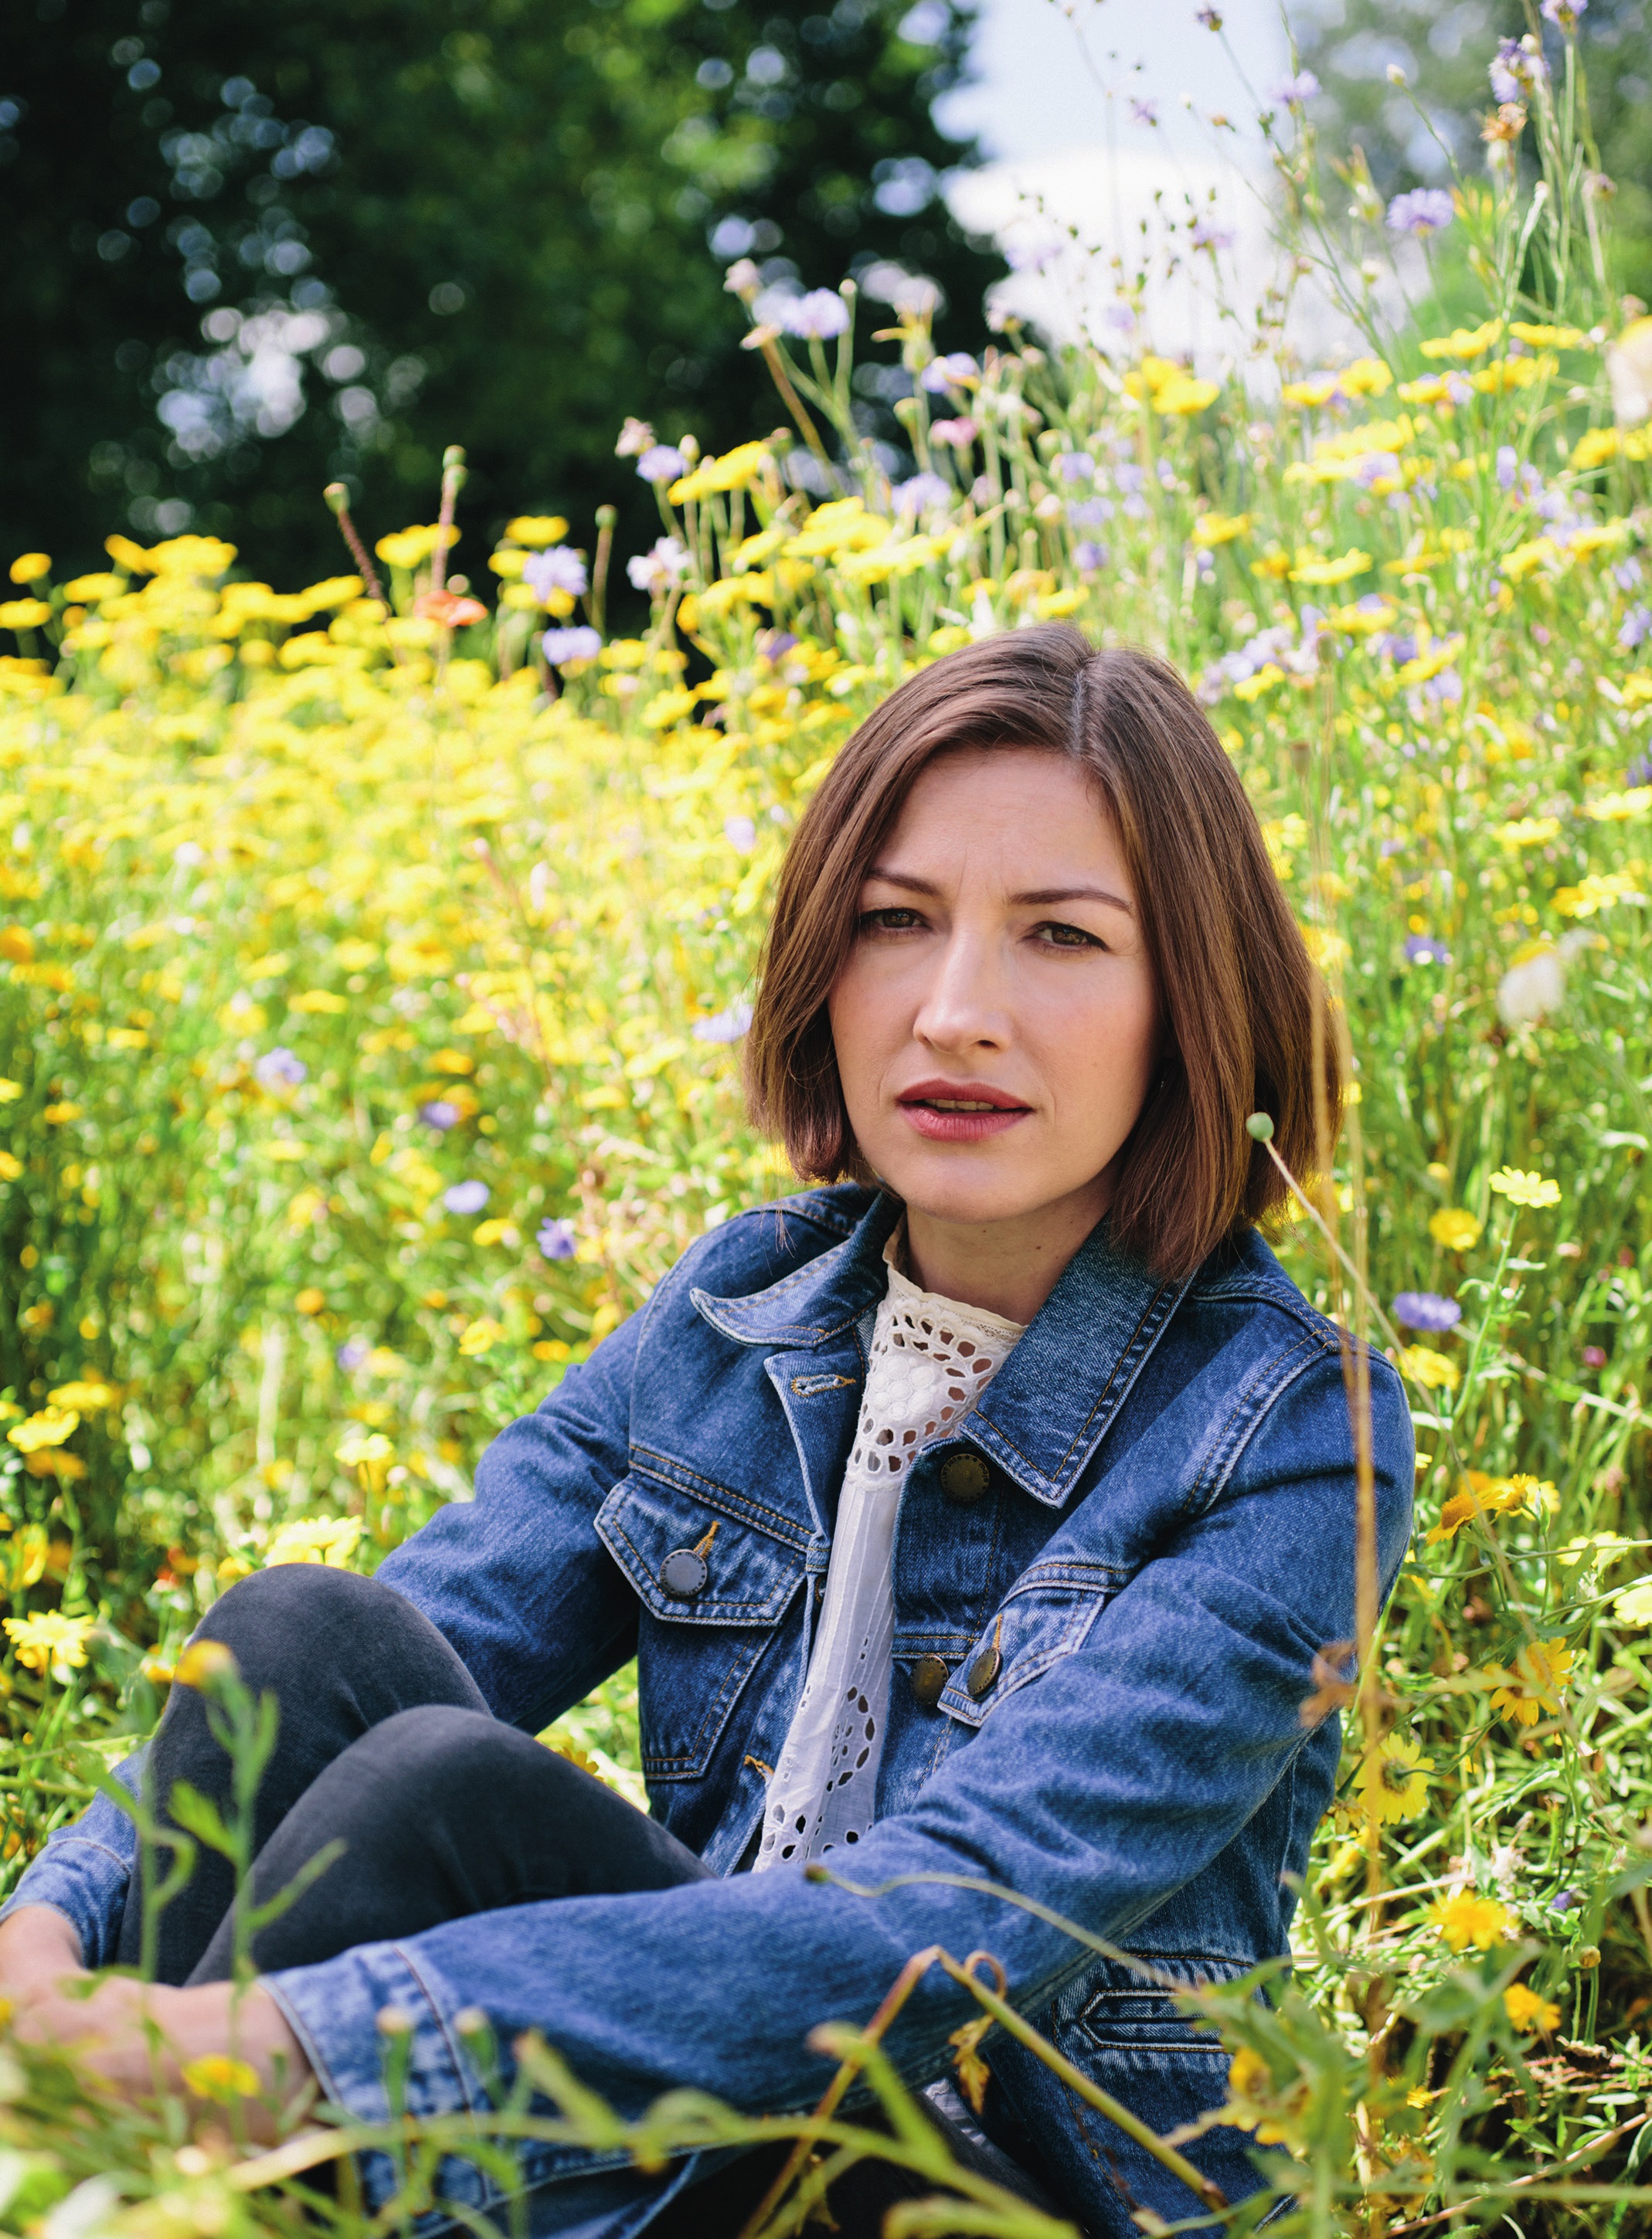 Kelly Macdonald (Swallows and Amazons) interview, published in Oh Comely Issue Thirty-Two. Photograph by Liz Seabrook